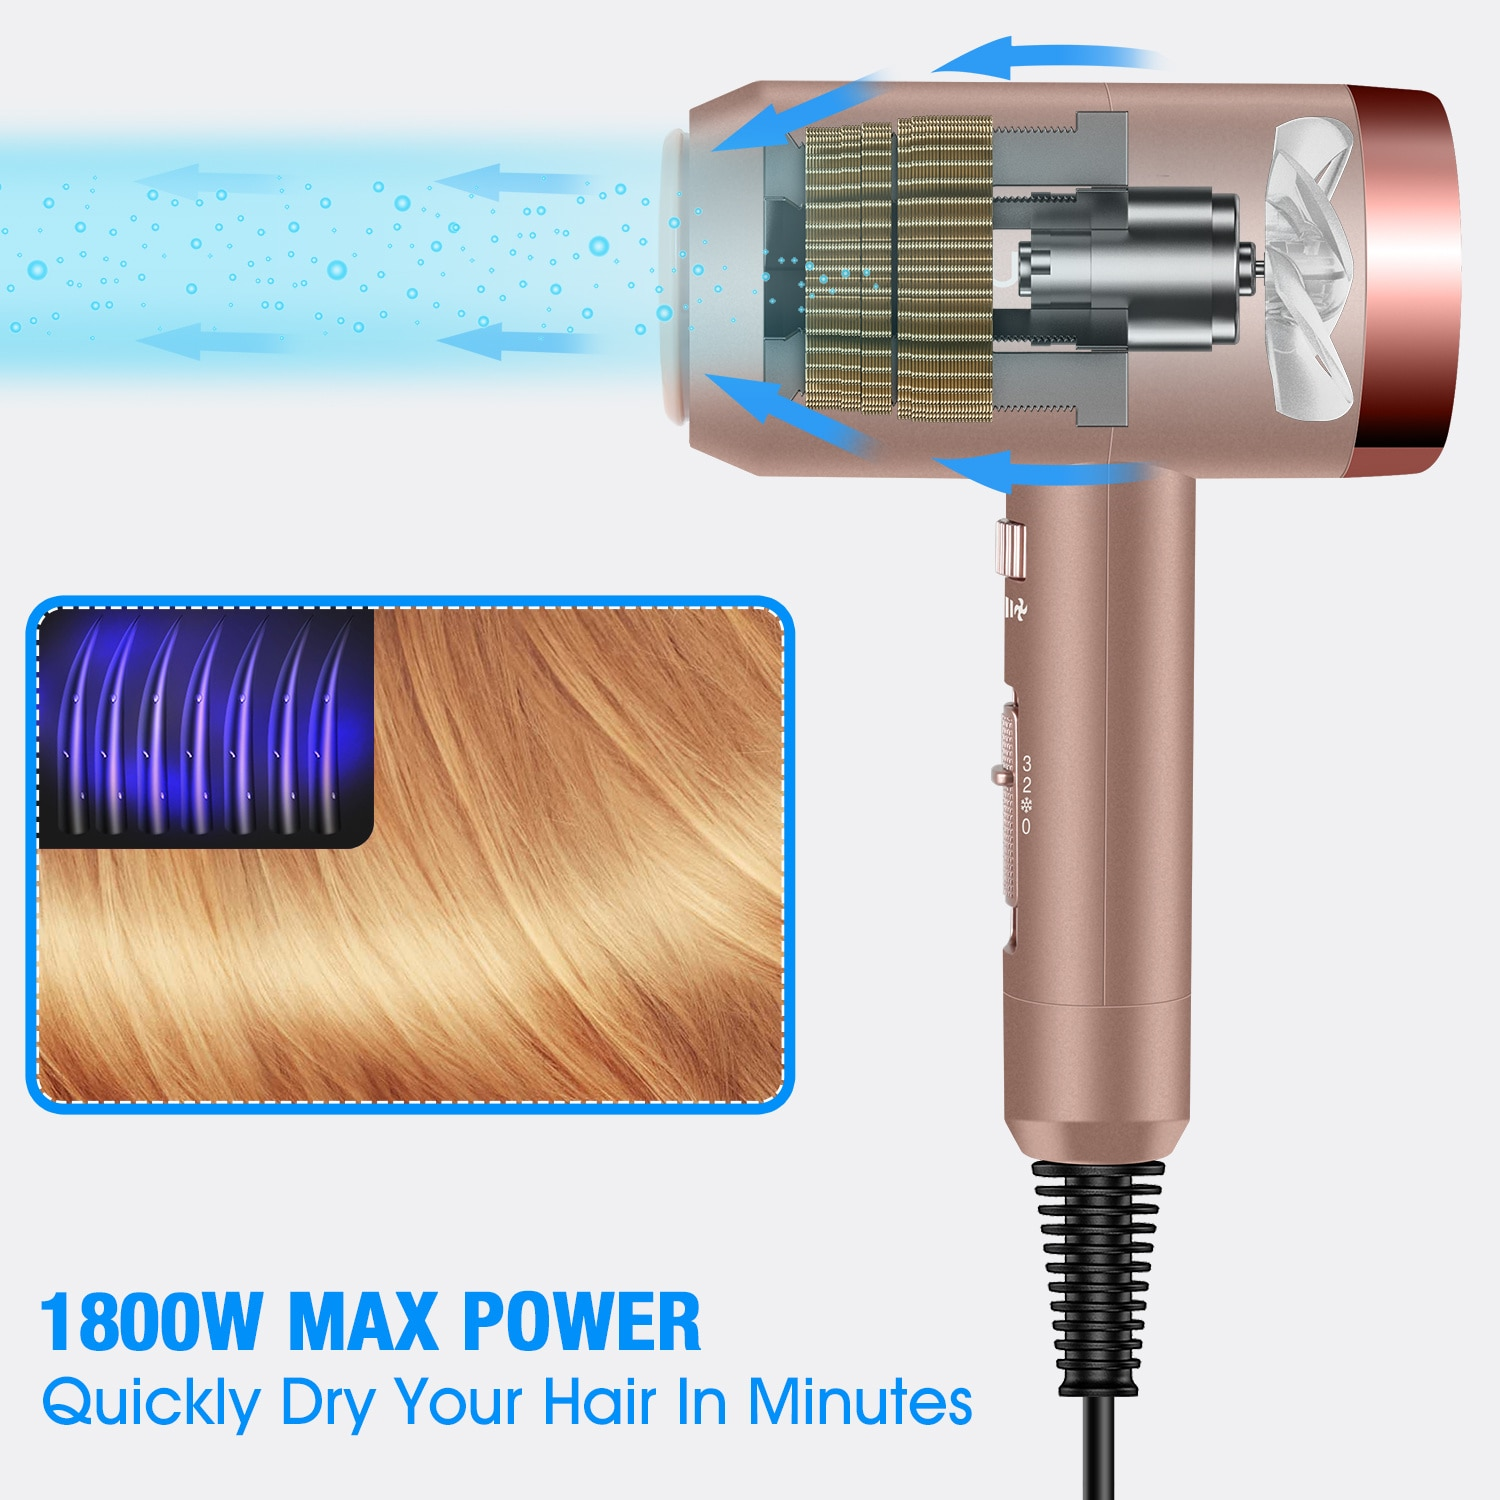 Professional Hair Dryer 1800W Anion High Power Strong Wind Fast Drying with Diffuser Nozzle Hairdryer Women Men Travel Home Use enlarge